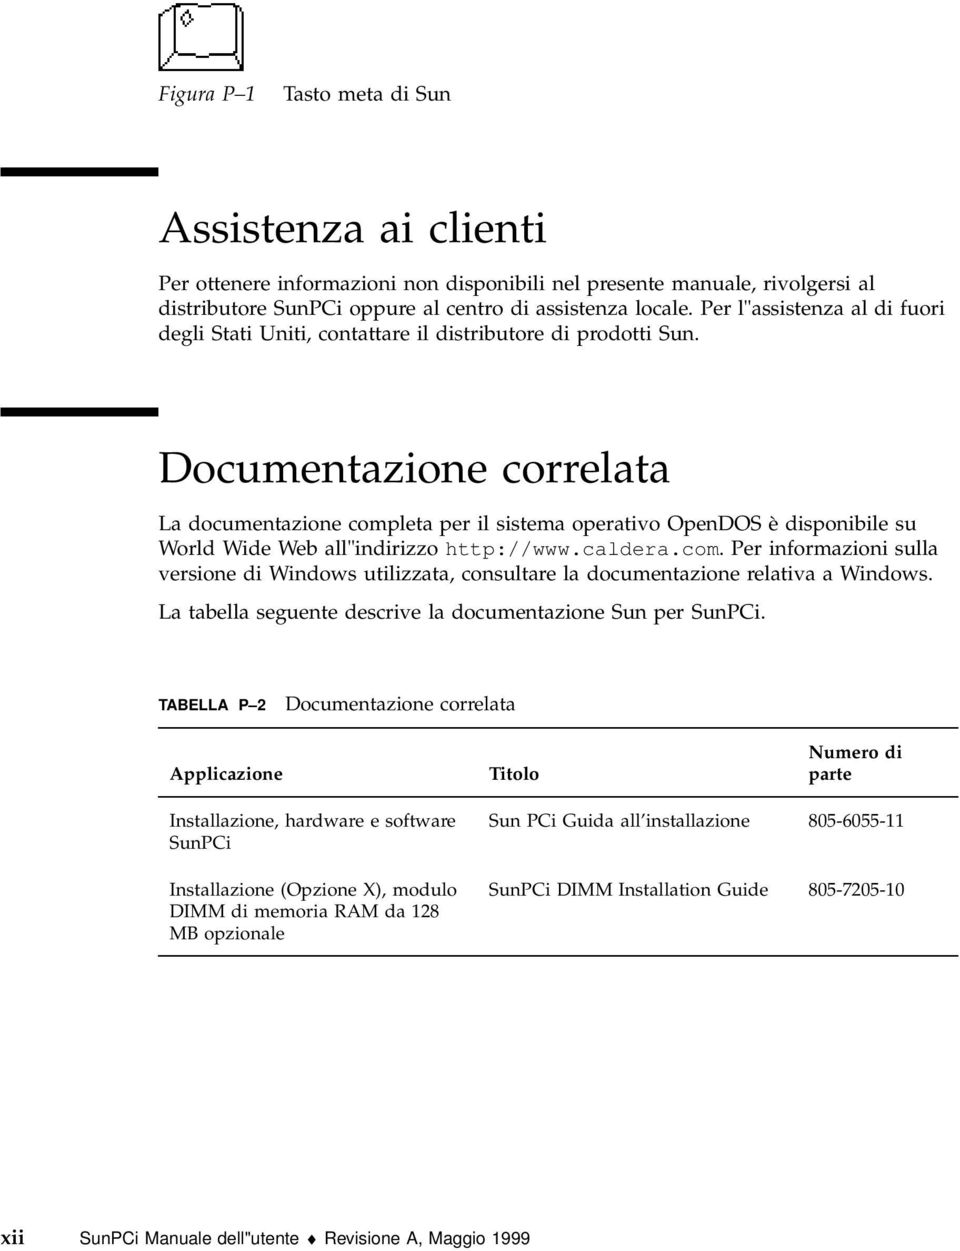 "Documentazione correlata La documentazione completa per il sistema operativo OpenDOS è disponibile su World Wide Web all""indirizzo http://www.caldera.com. Per informazioni sulla versione di Windows utilizzata, consultare la documentazione relativa a Windows."